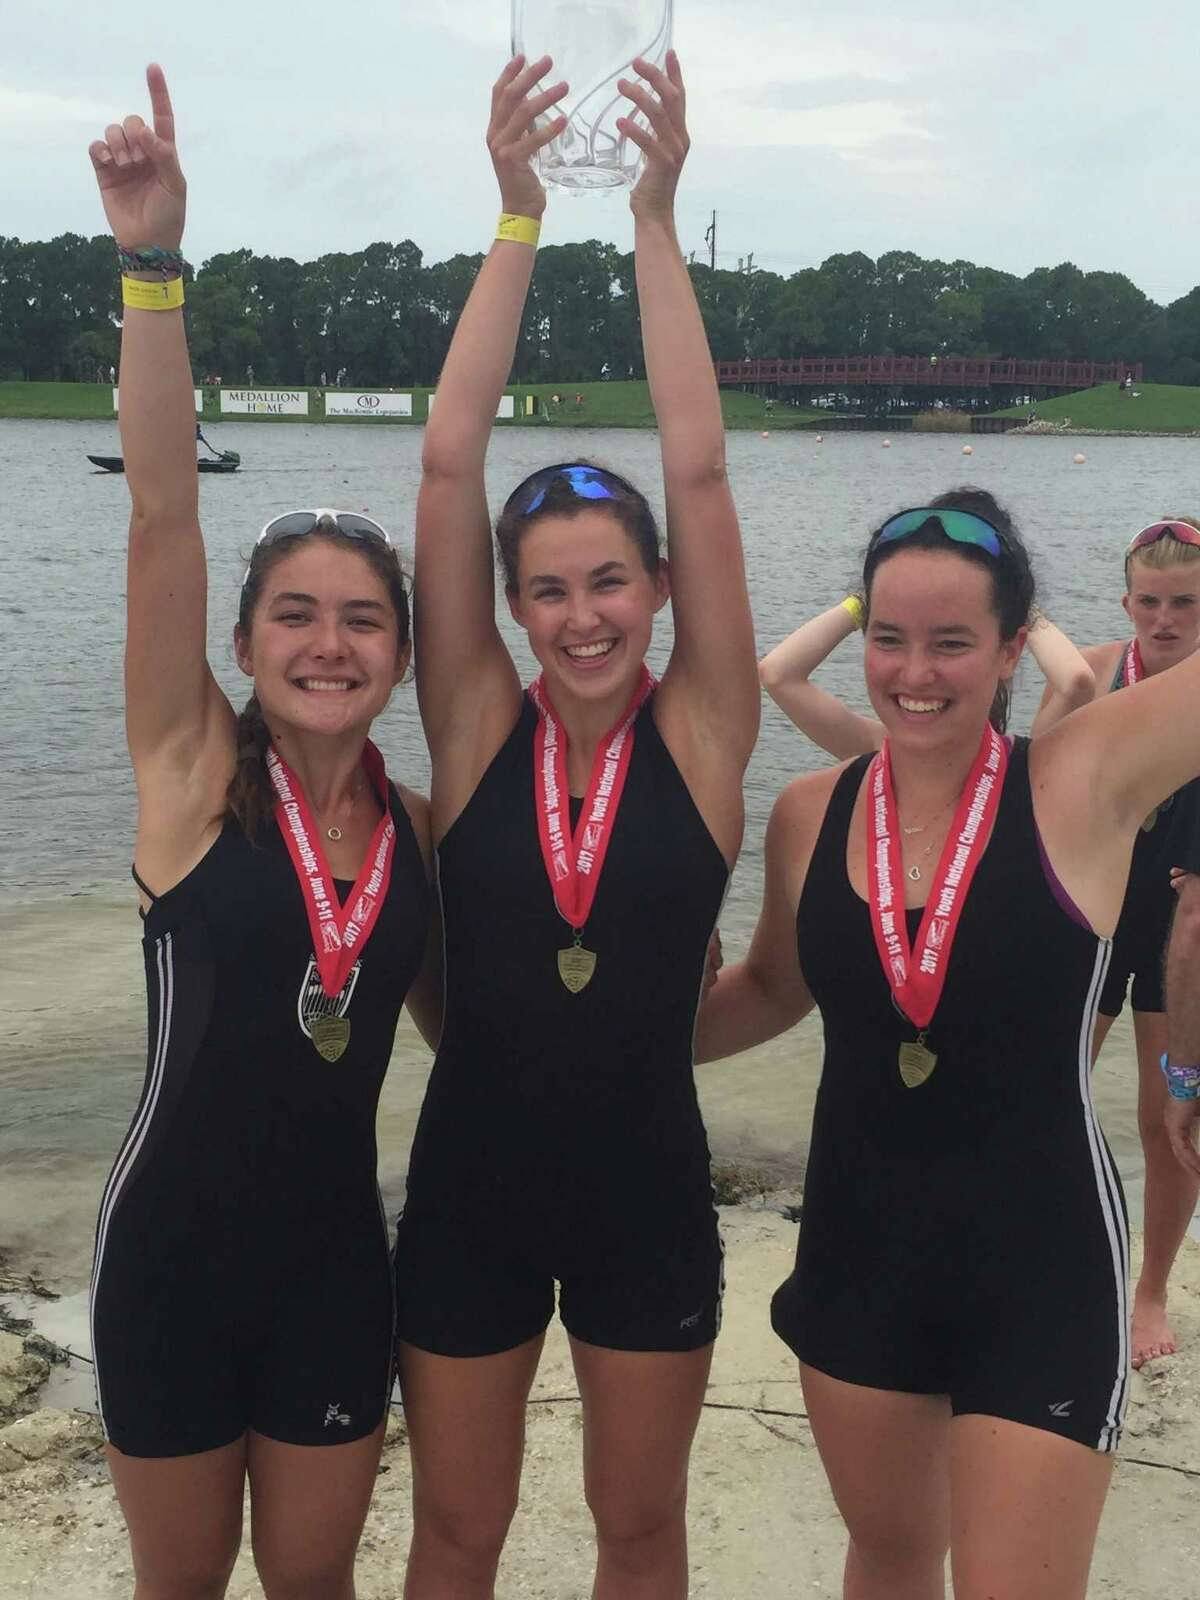 Caitlin Esse of New Canaan (R) celebrates with teammates after winning the womens youth 8+ national championship.